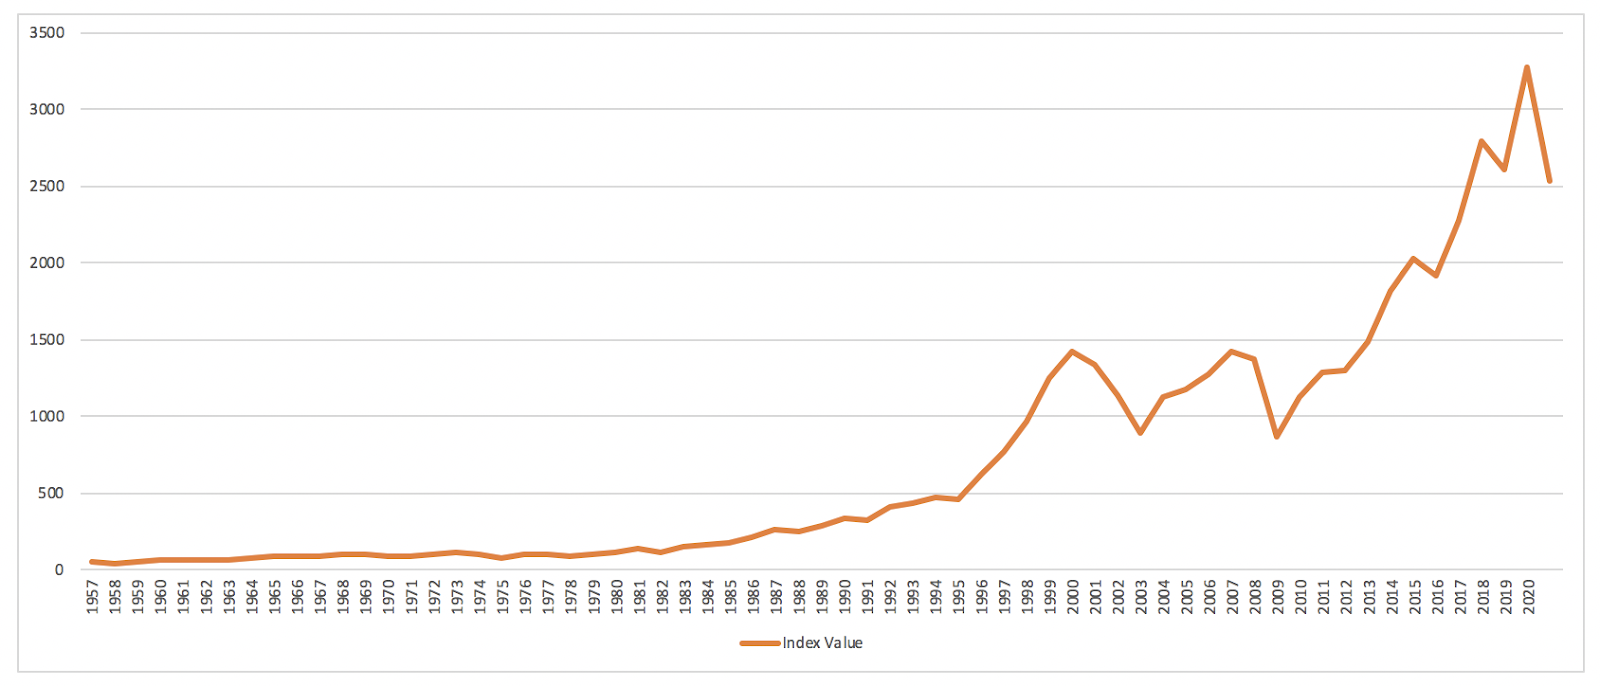 The S&P 500 Index has grown phenomenally over the last six decades